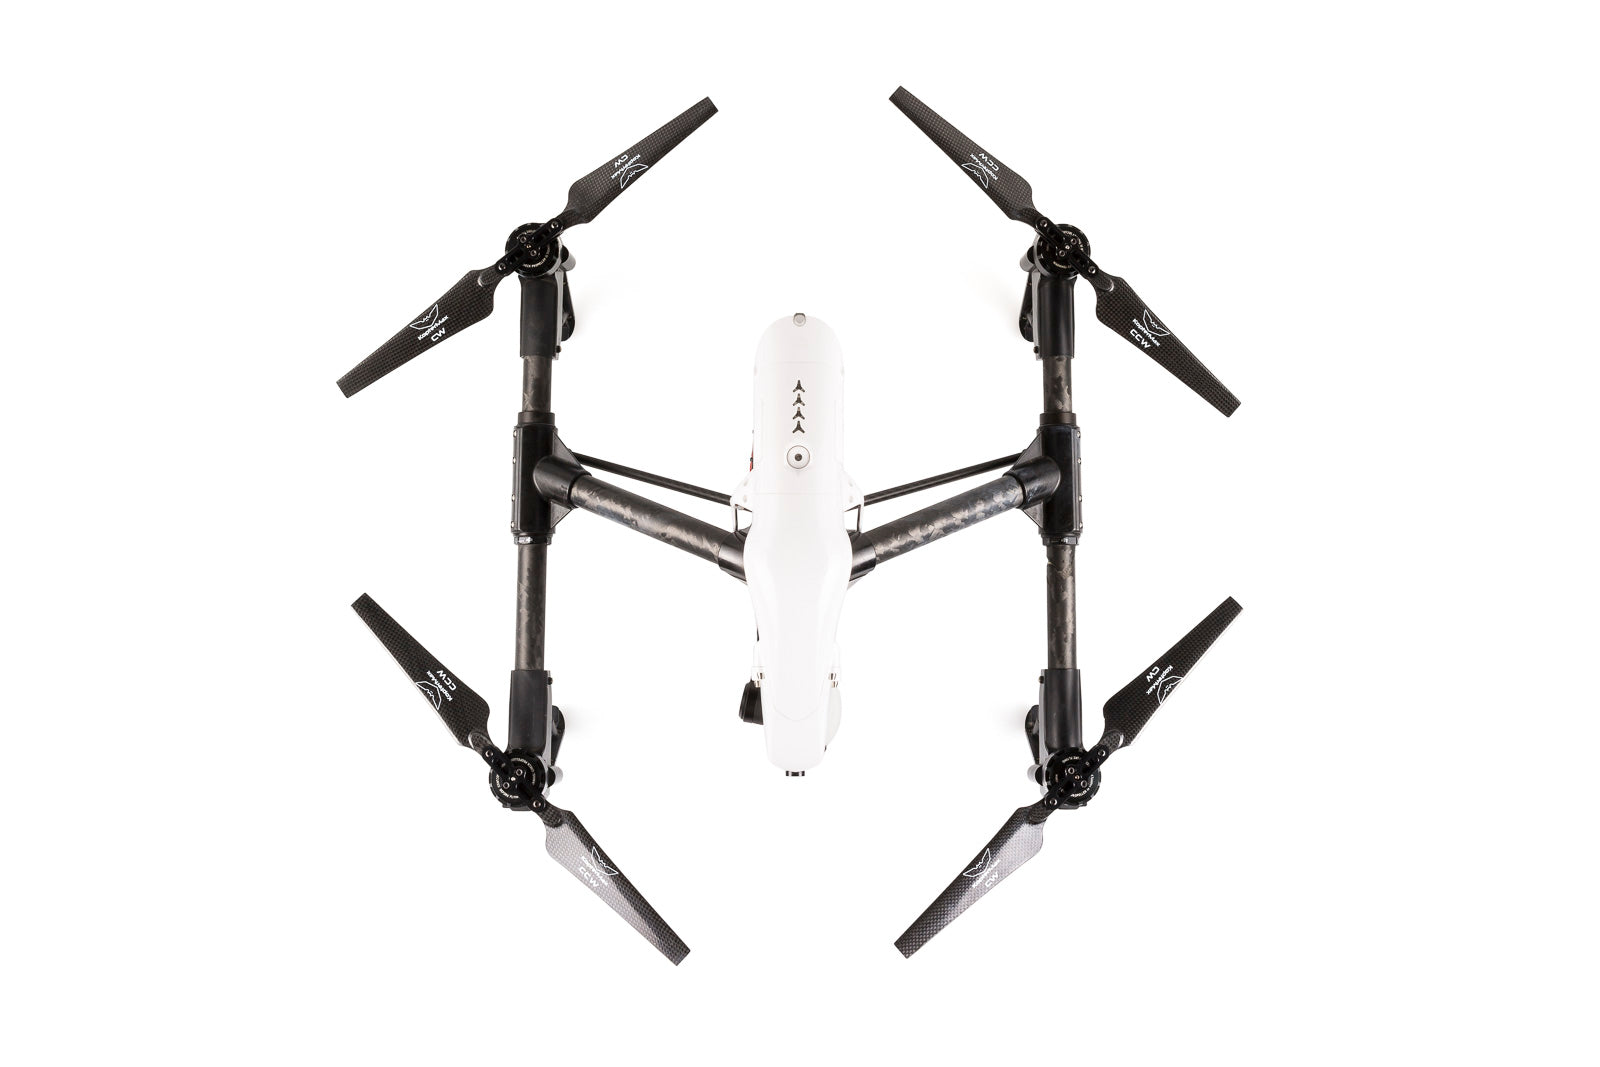 Carbon Fiber folding propellers for DJI Inspire 1/Matrice 100 drone